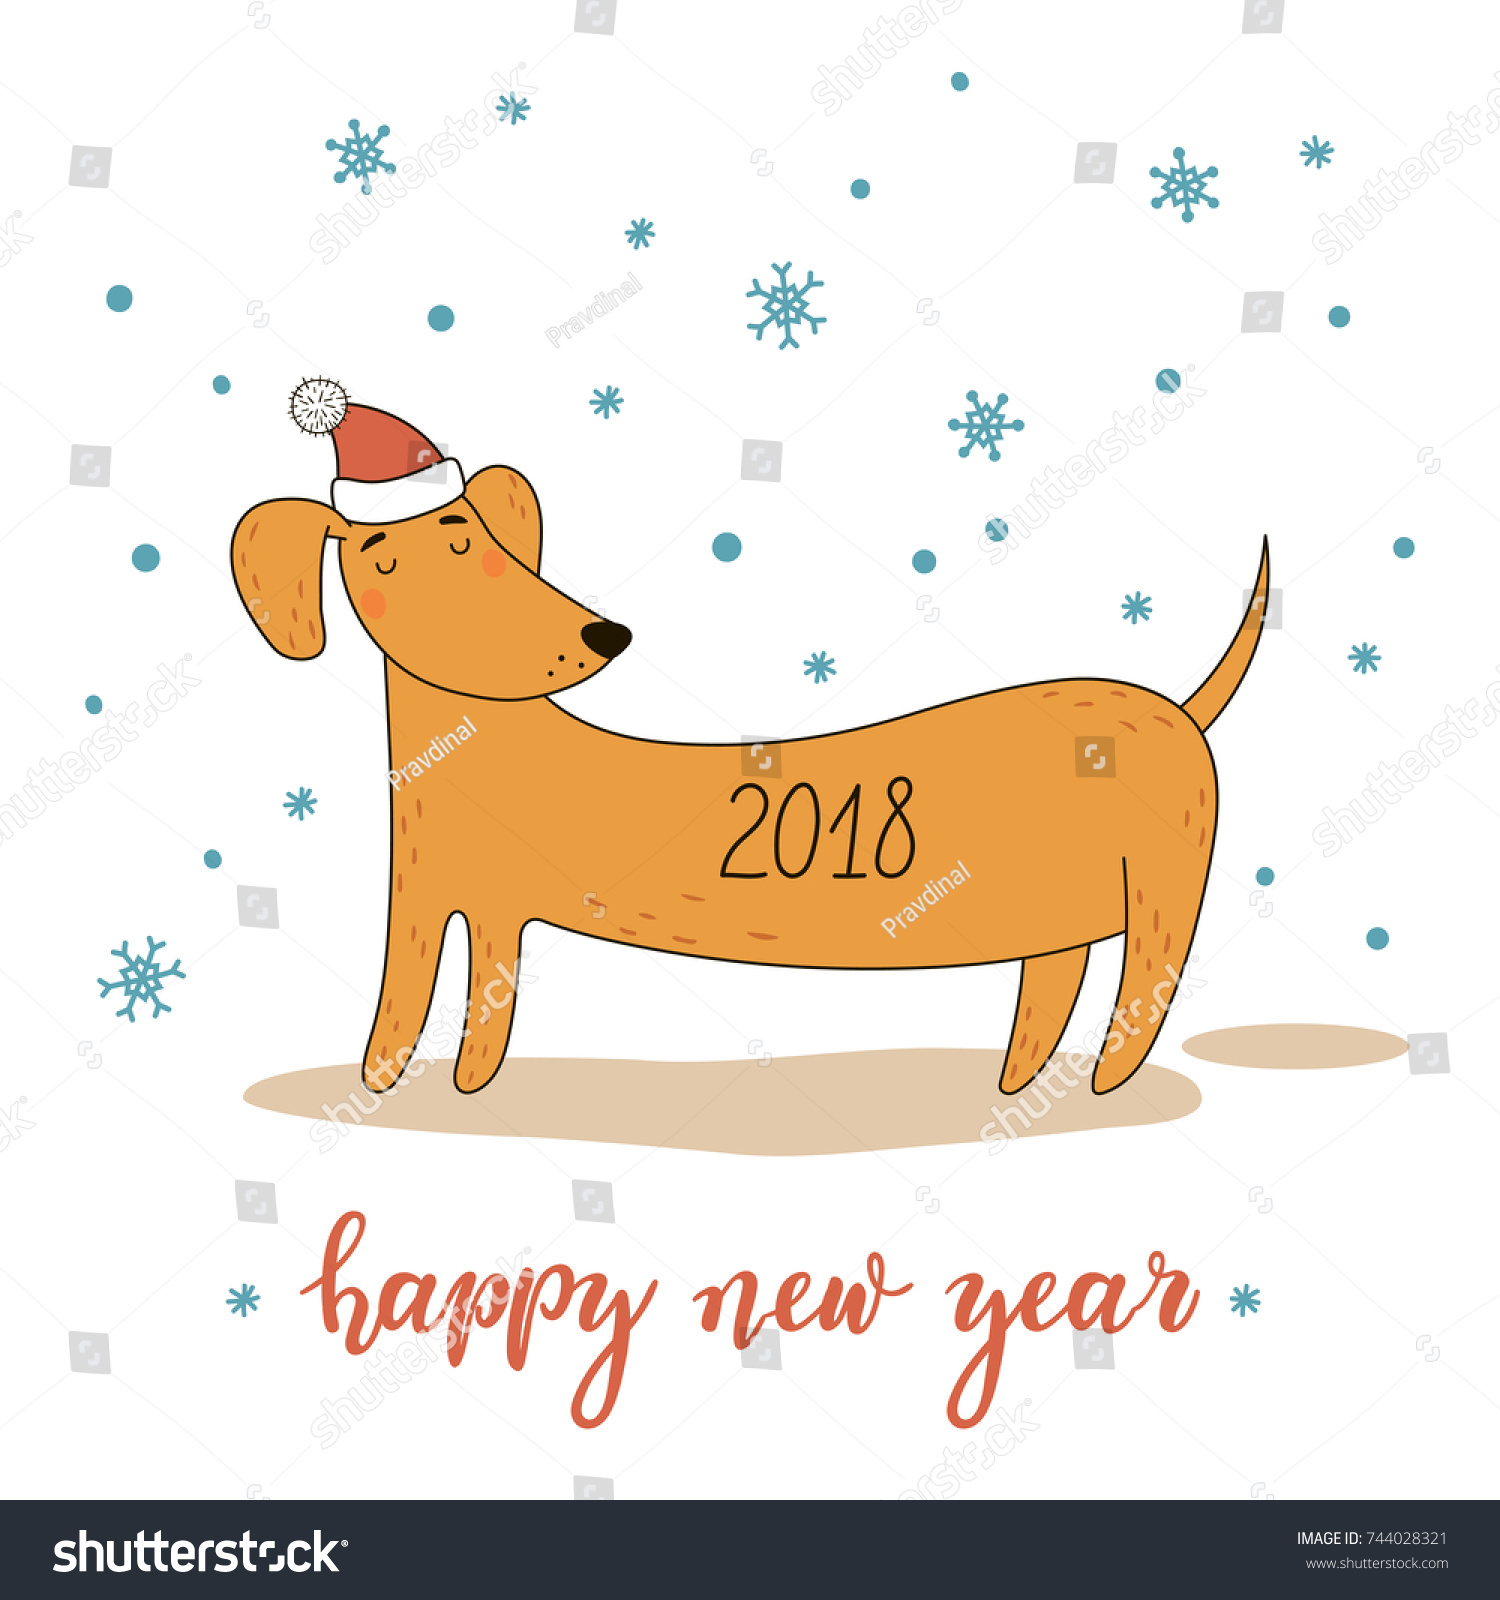 Christmas new year greeting card cute stock vector 744028321 christmas and new year greeting card with cute cartoon dachshund vector illustration is suitable for kristyandbryce Image collections